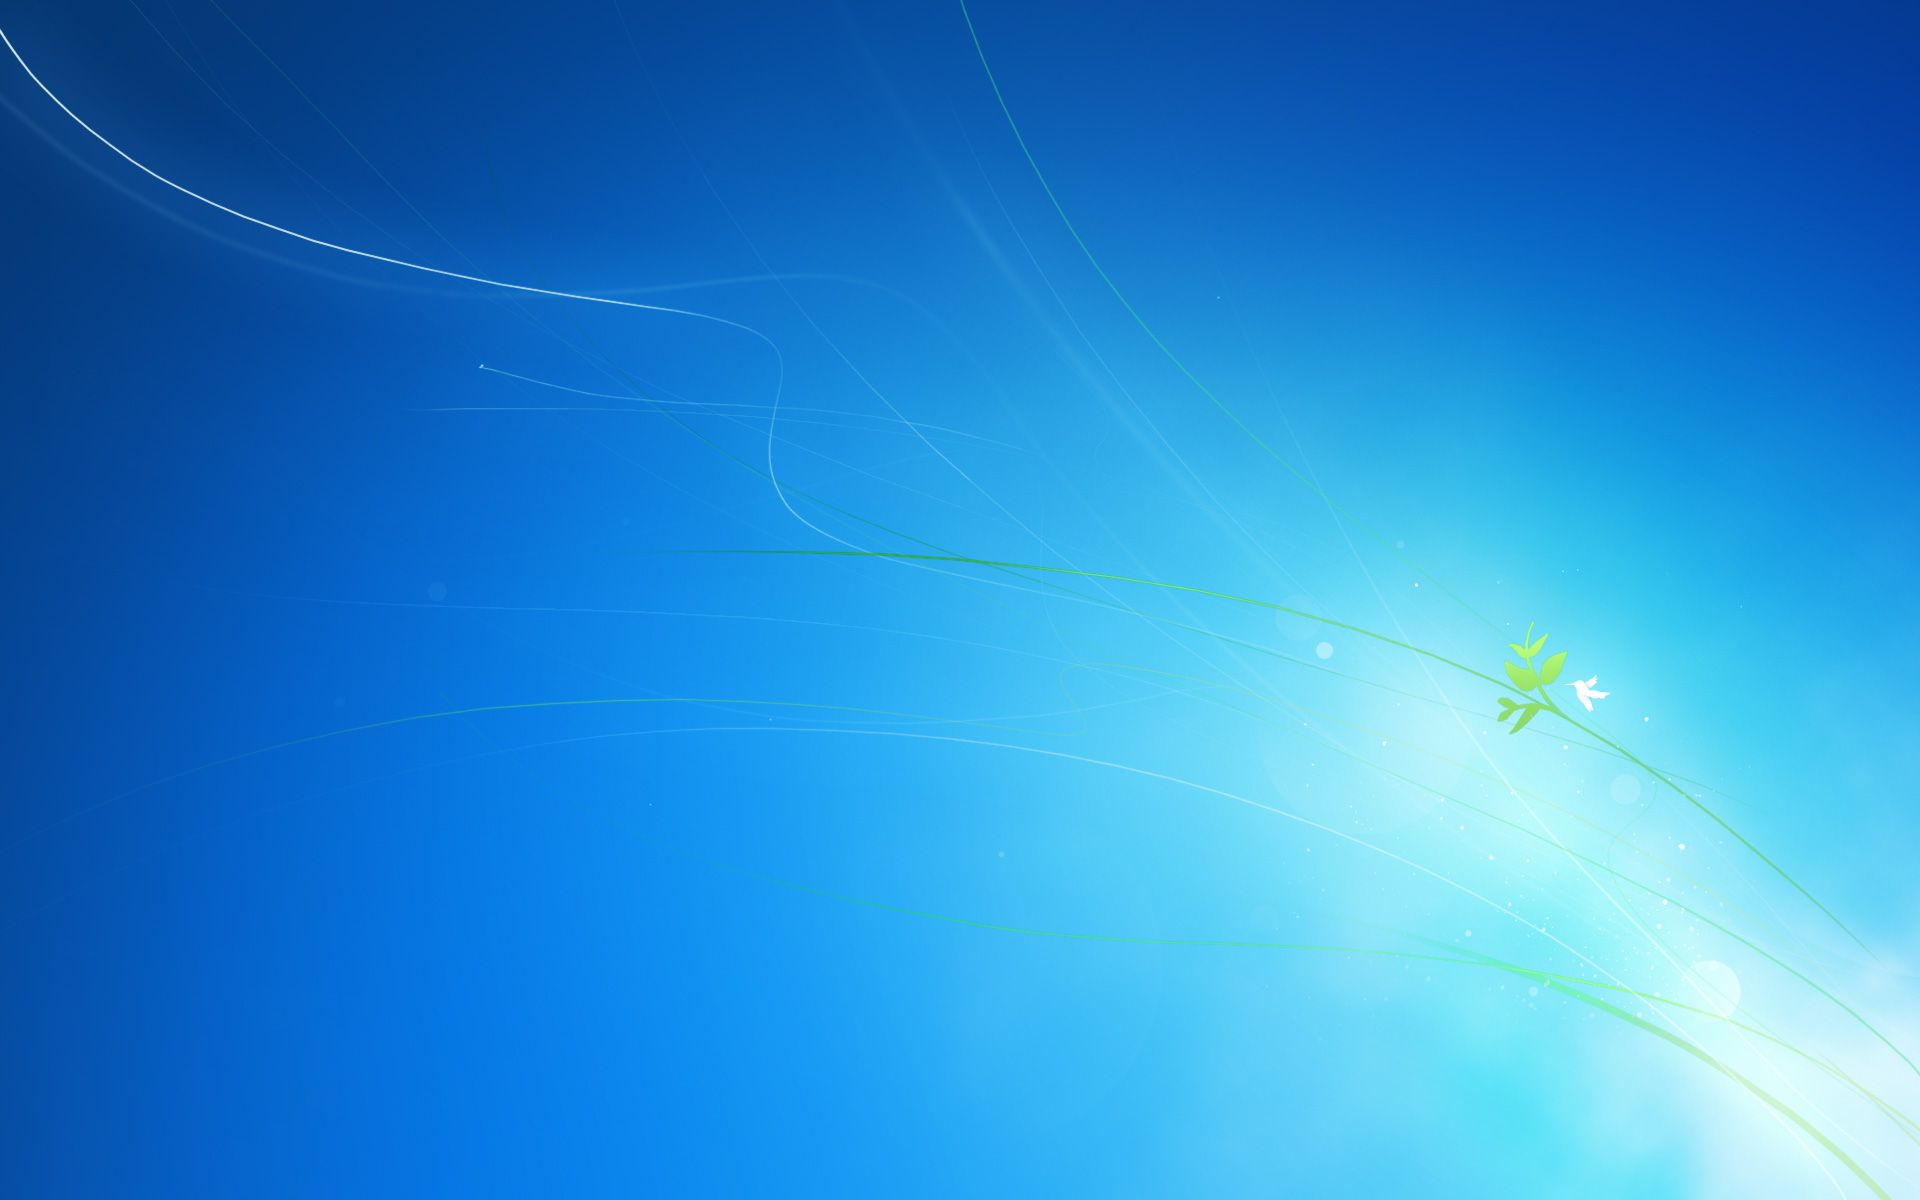 01-neue-windows-8-hintergruende-wallpapers-blau-470.jpg?nocache=1330513834559